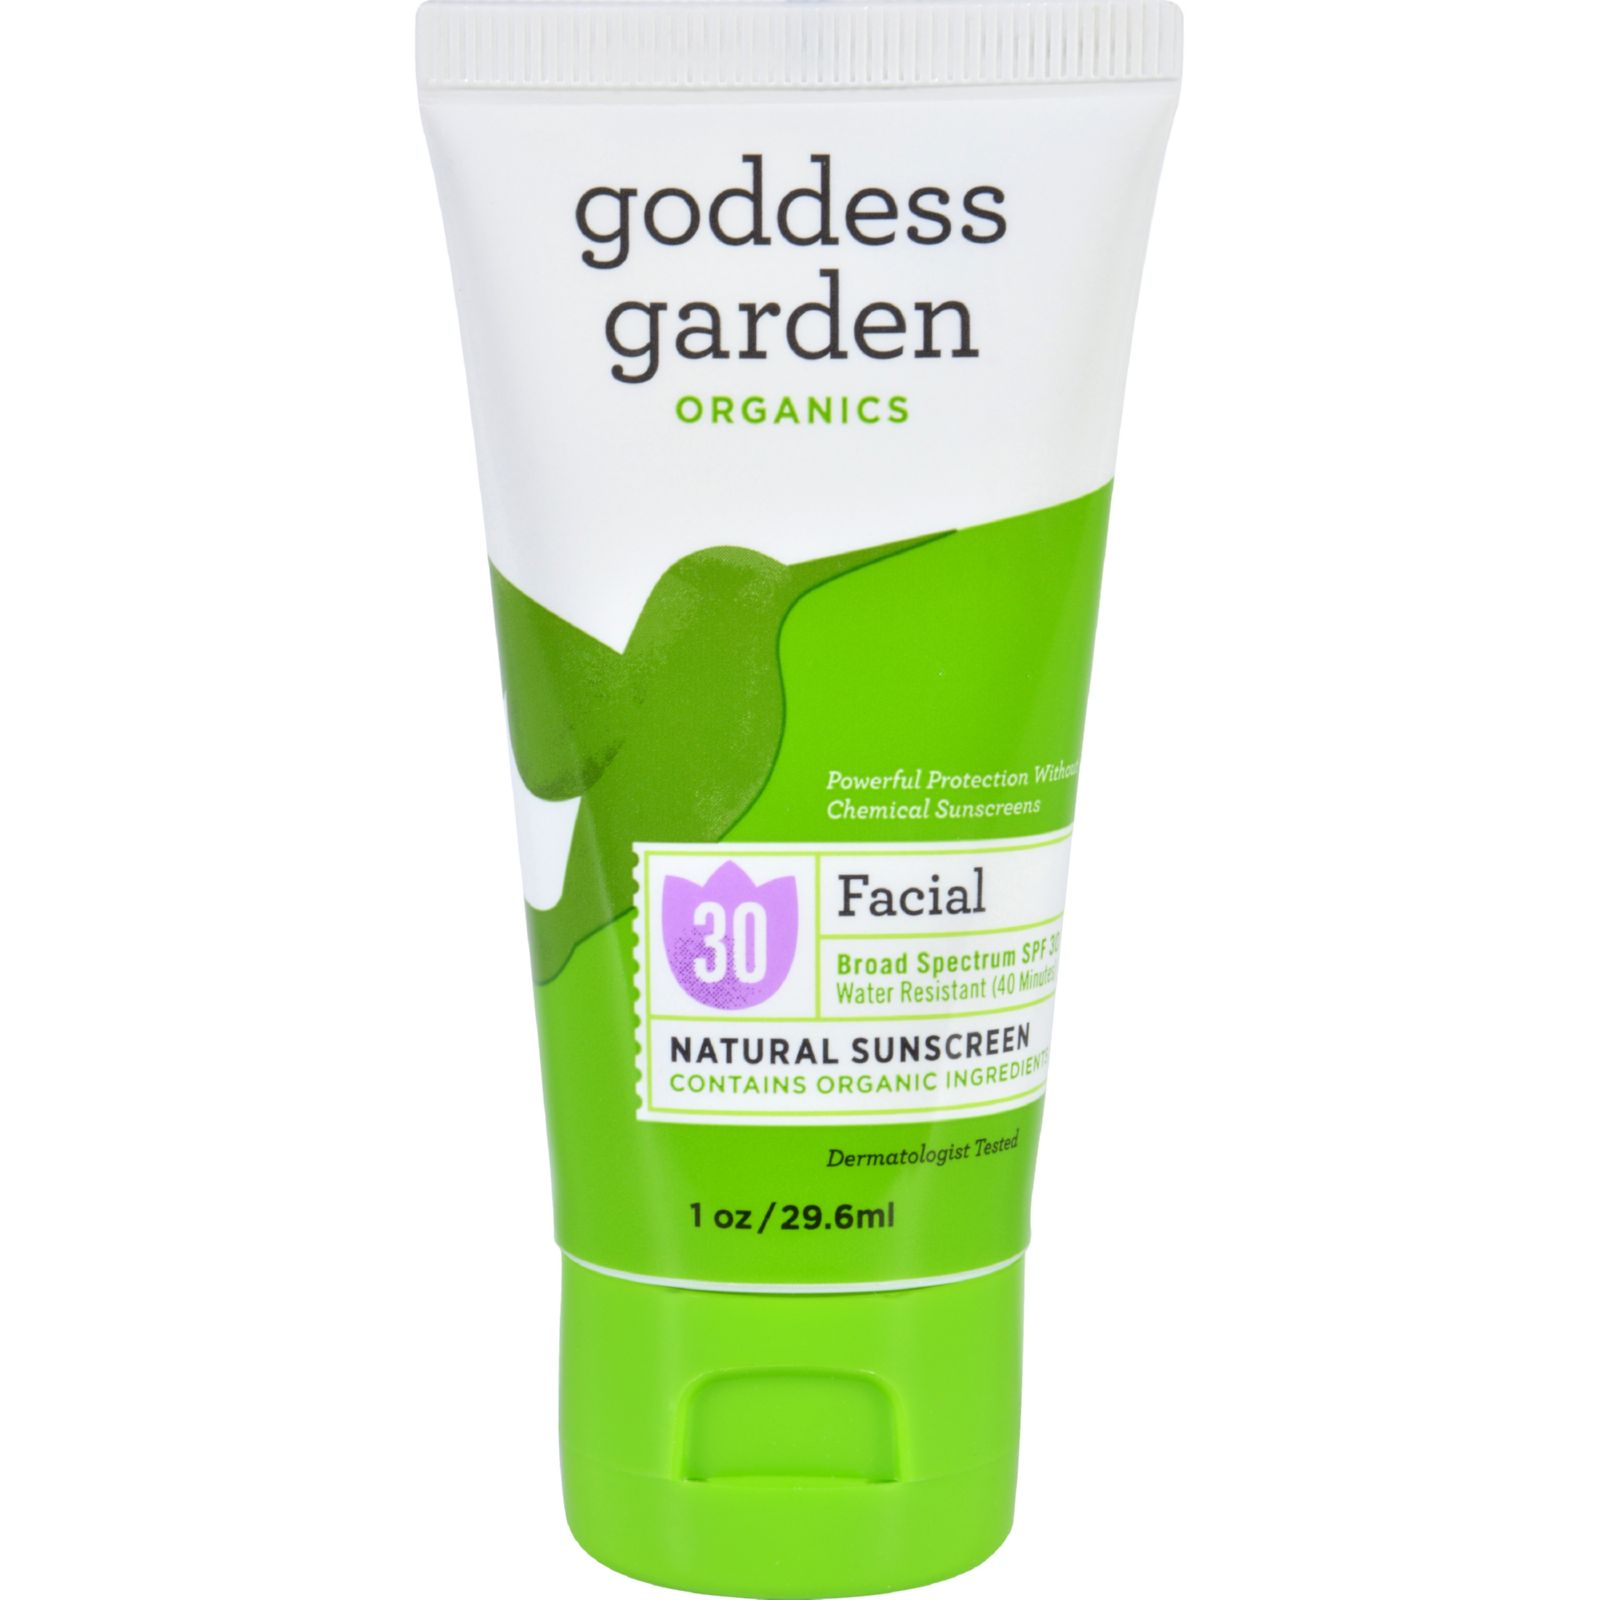 Goddess Garden Sunscreen - Counter Display - Organic - Facial - Spf 30 - Tube - 1 Oz